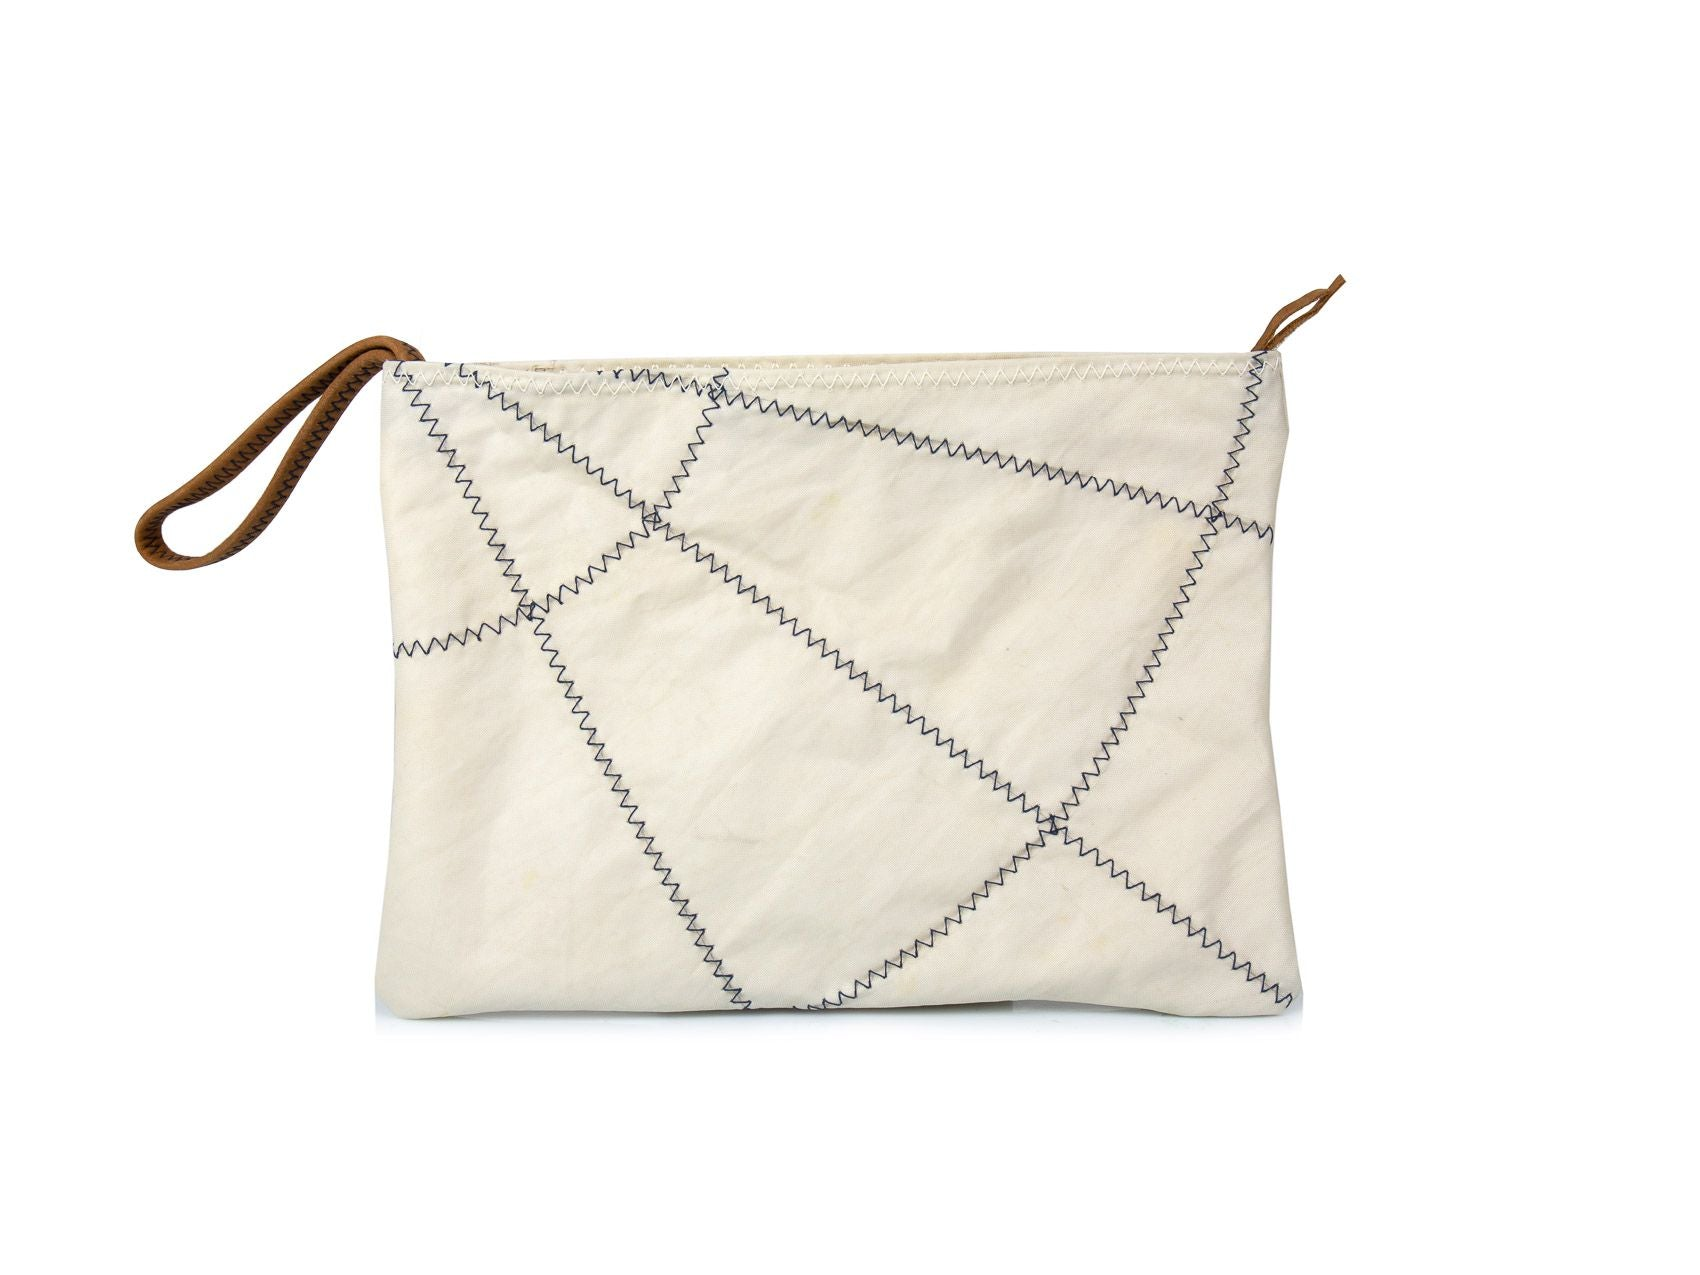 Made from 100% recycled sails from the last surviving 19th century legendary three-masted ship (the Belem) this clutch bag is an ode to traditional sailing and sustainable fashion, it is also a practical pouch that fits easily everywhere due to its small size.